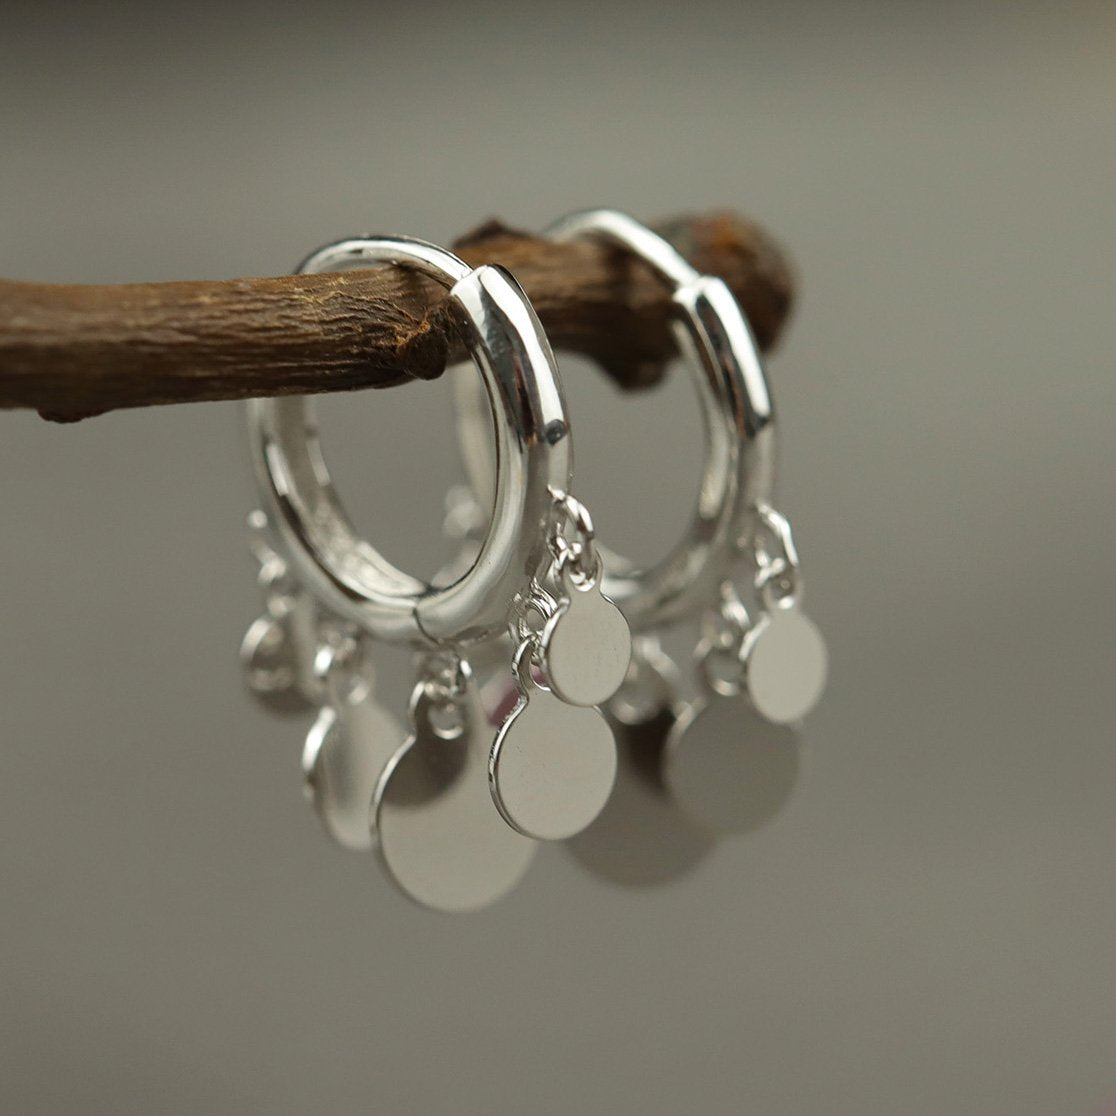 Stunning Bohemia Silver Earrings